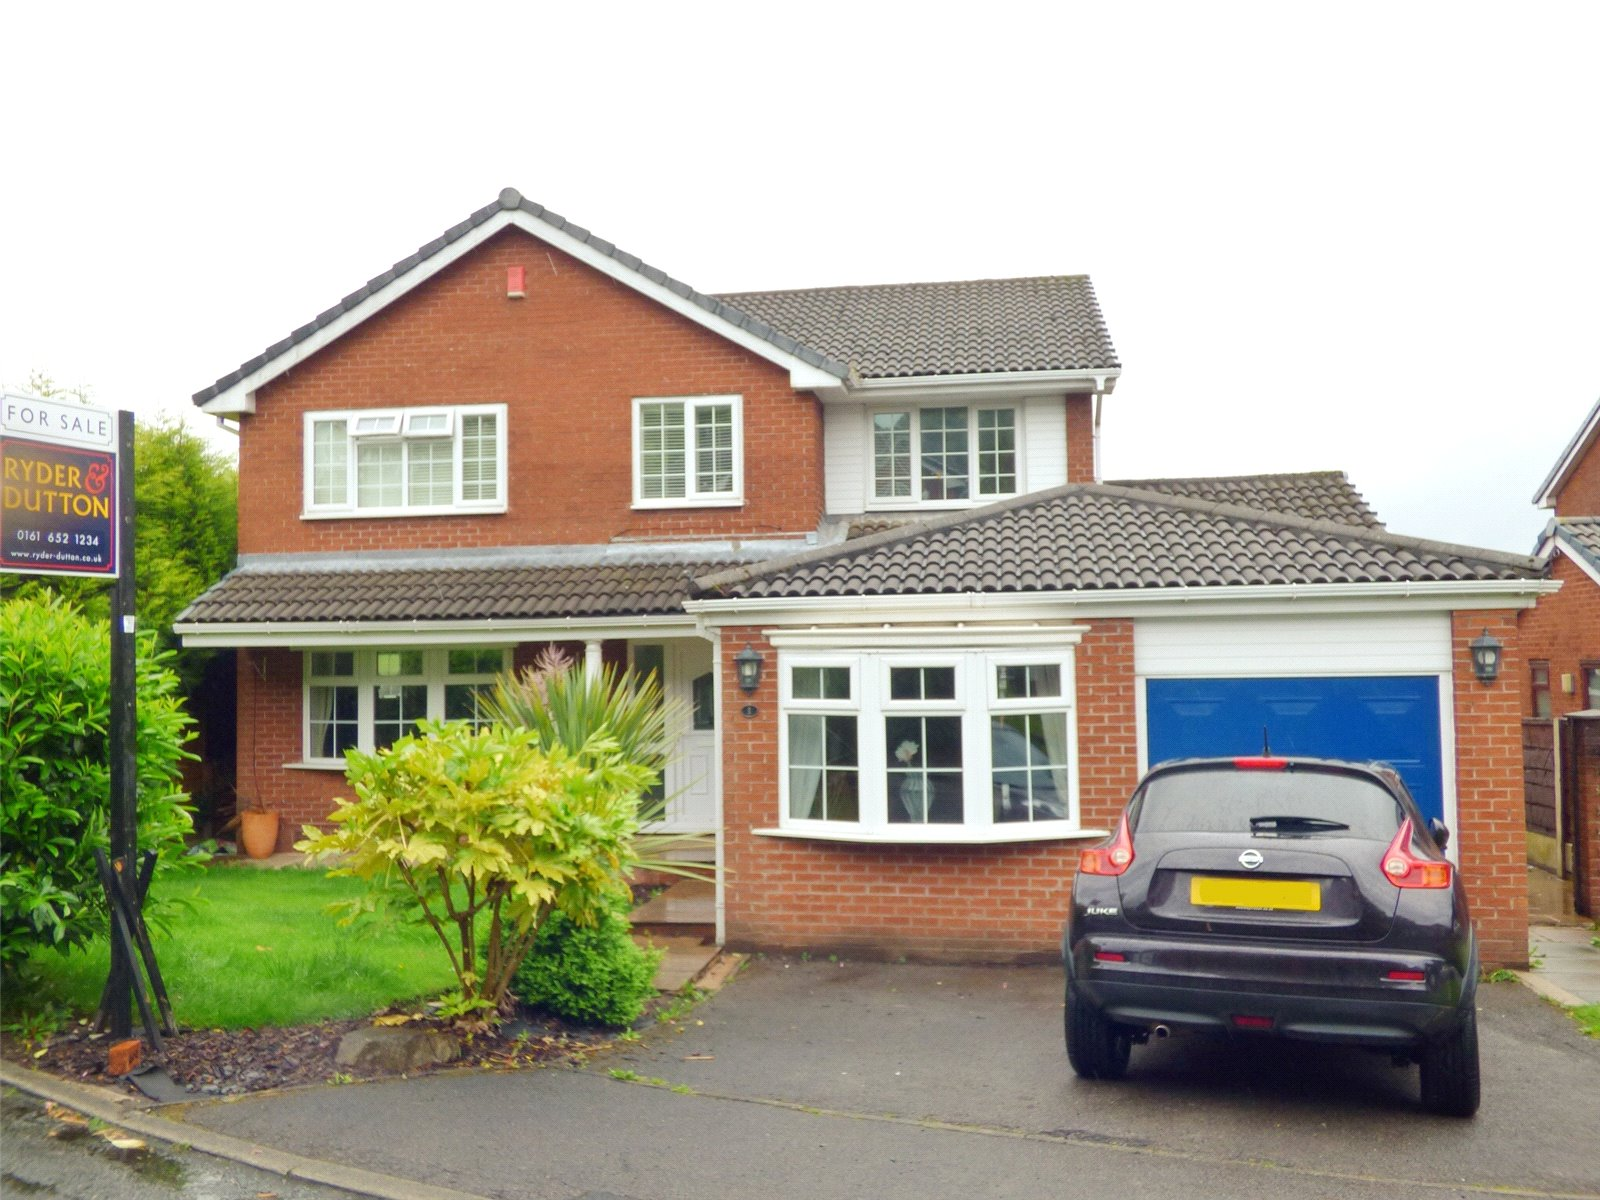 5 Bedrooms Detached House for sale in Whinstone Way, Irk Vale, Chadderton, Oldham, OL1